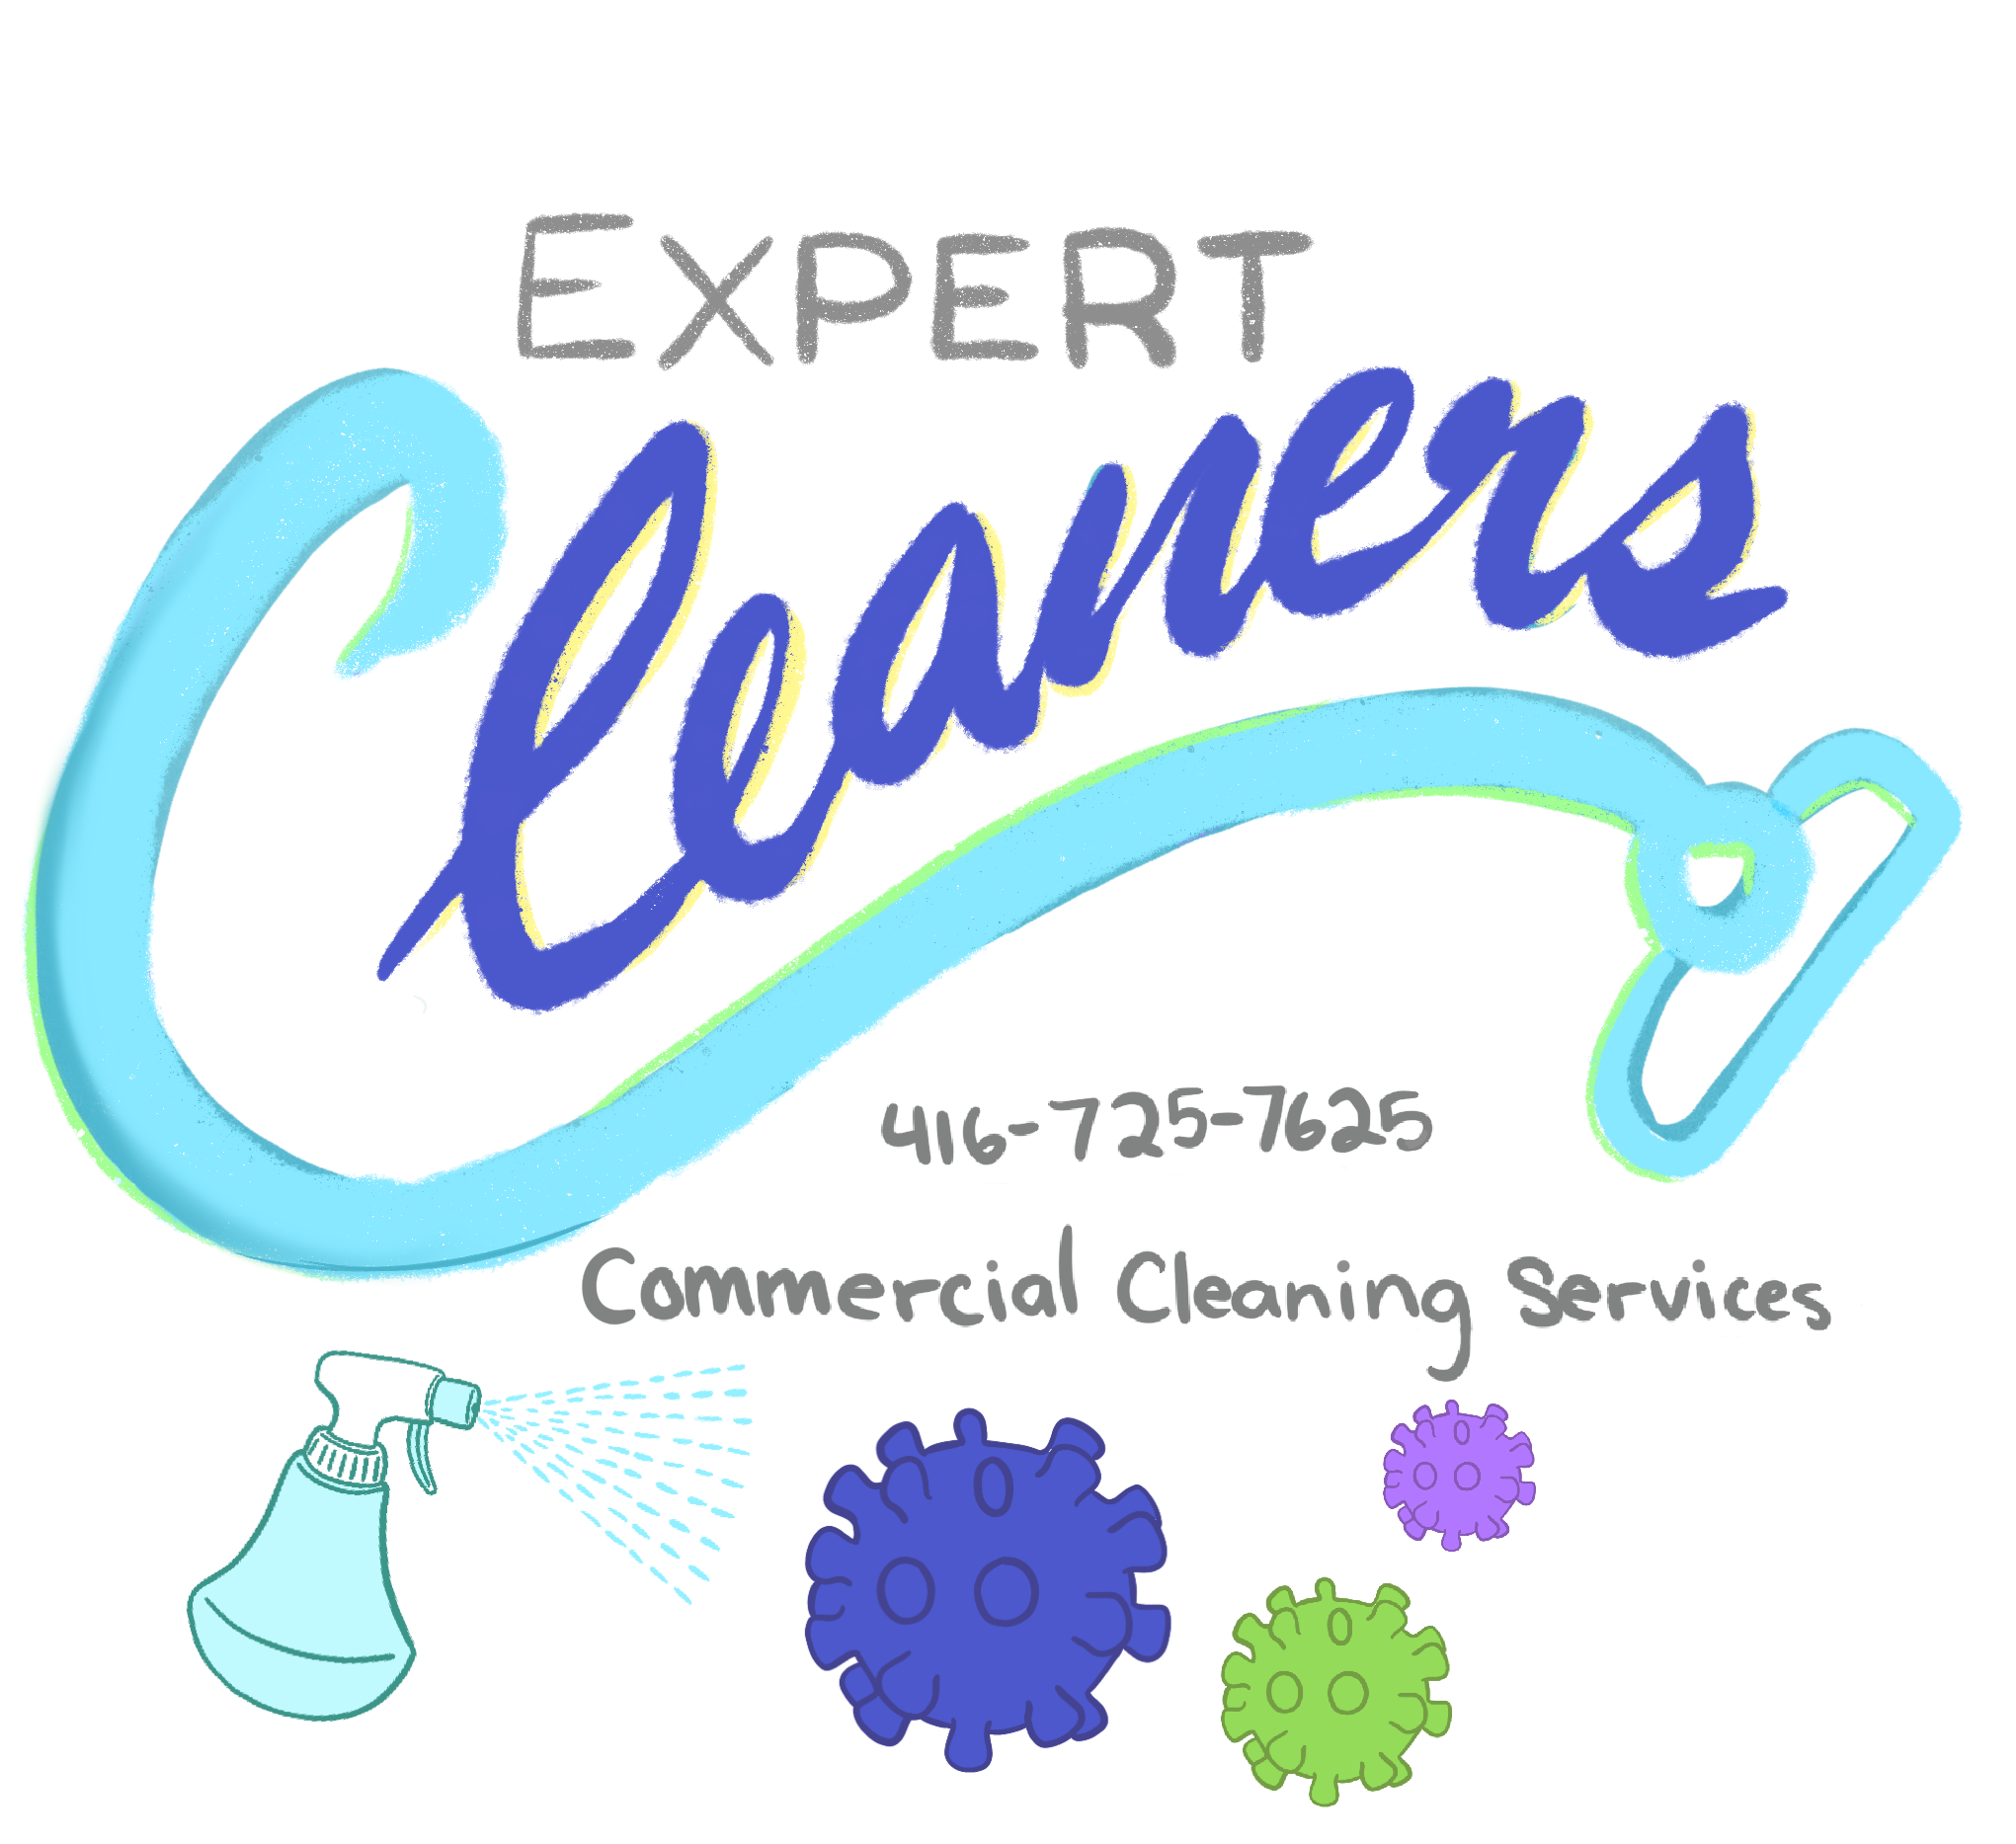 Expert Cleaners Inc.